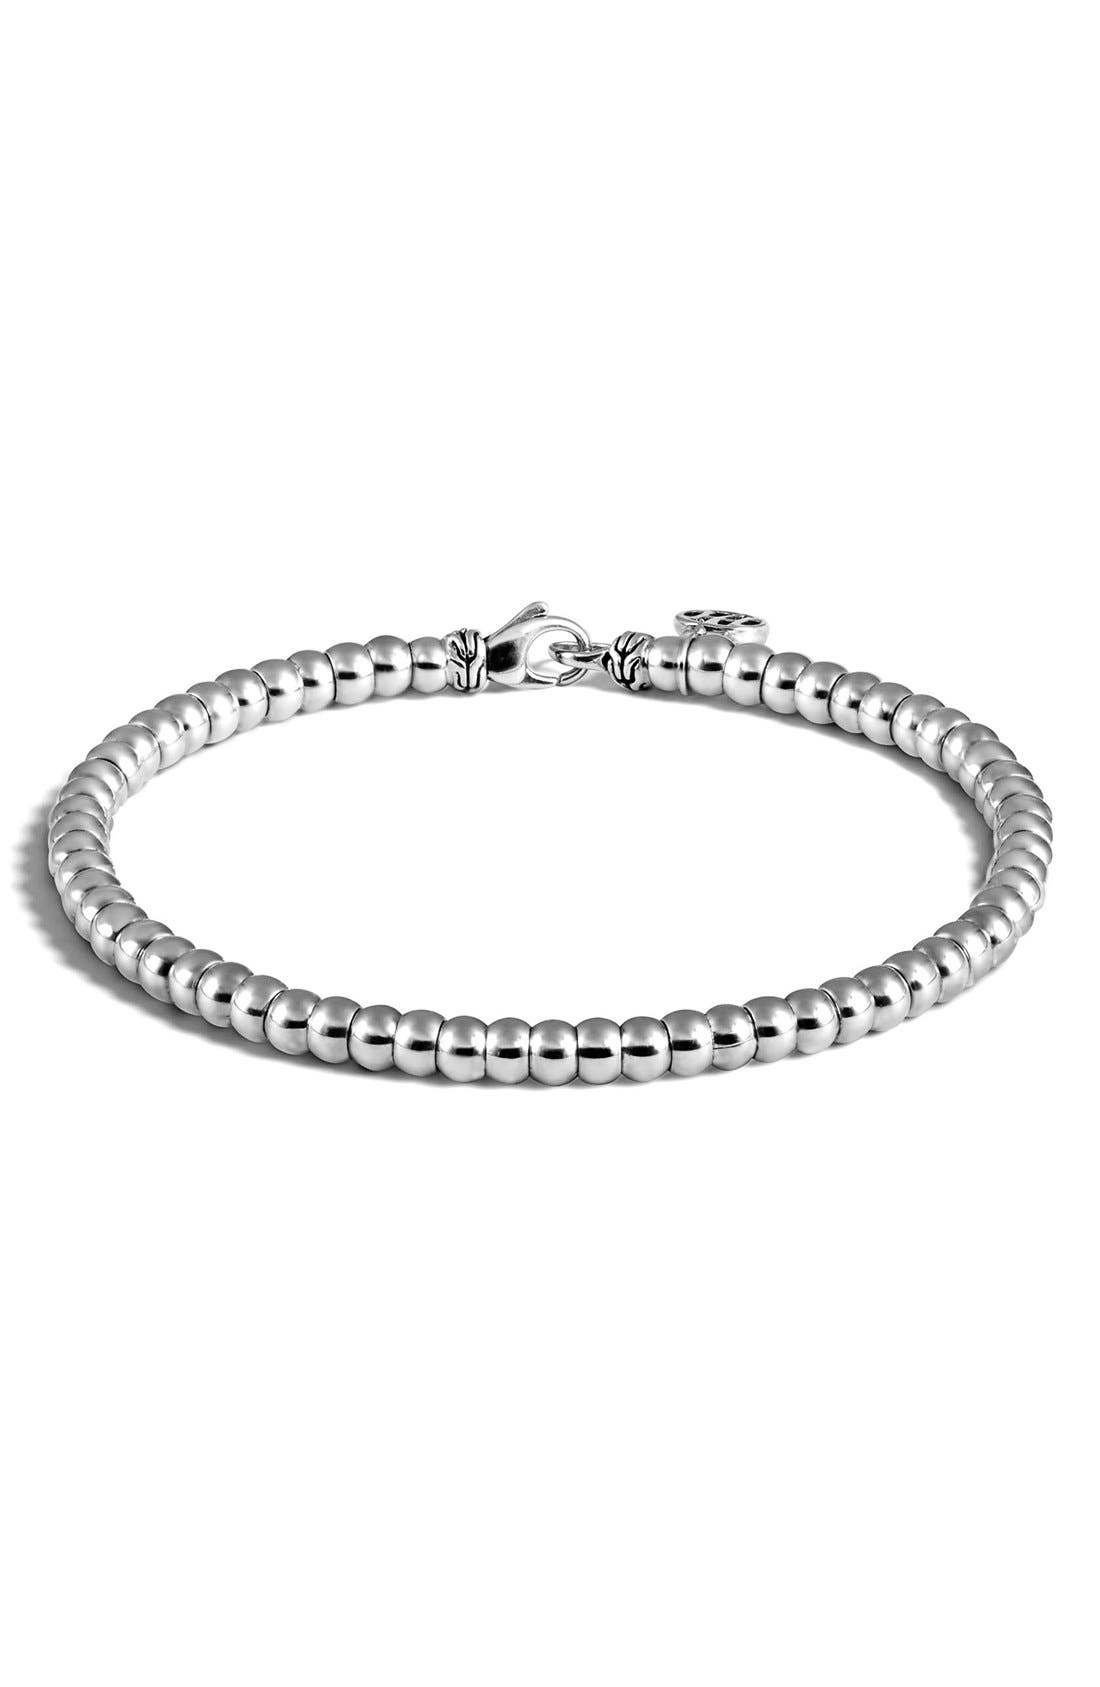 Main Image - John Hardy 'Classic Chain' Beaded Sterling Silver Bracelet